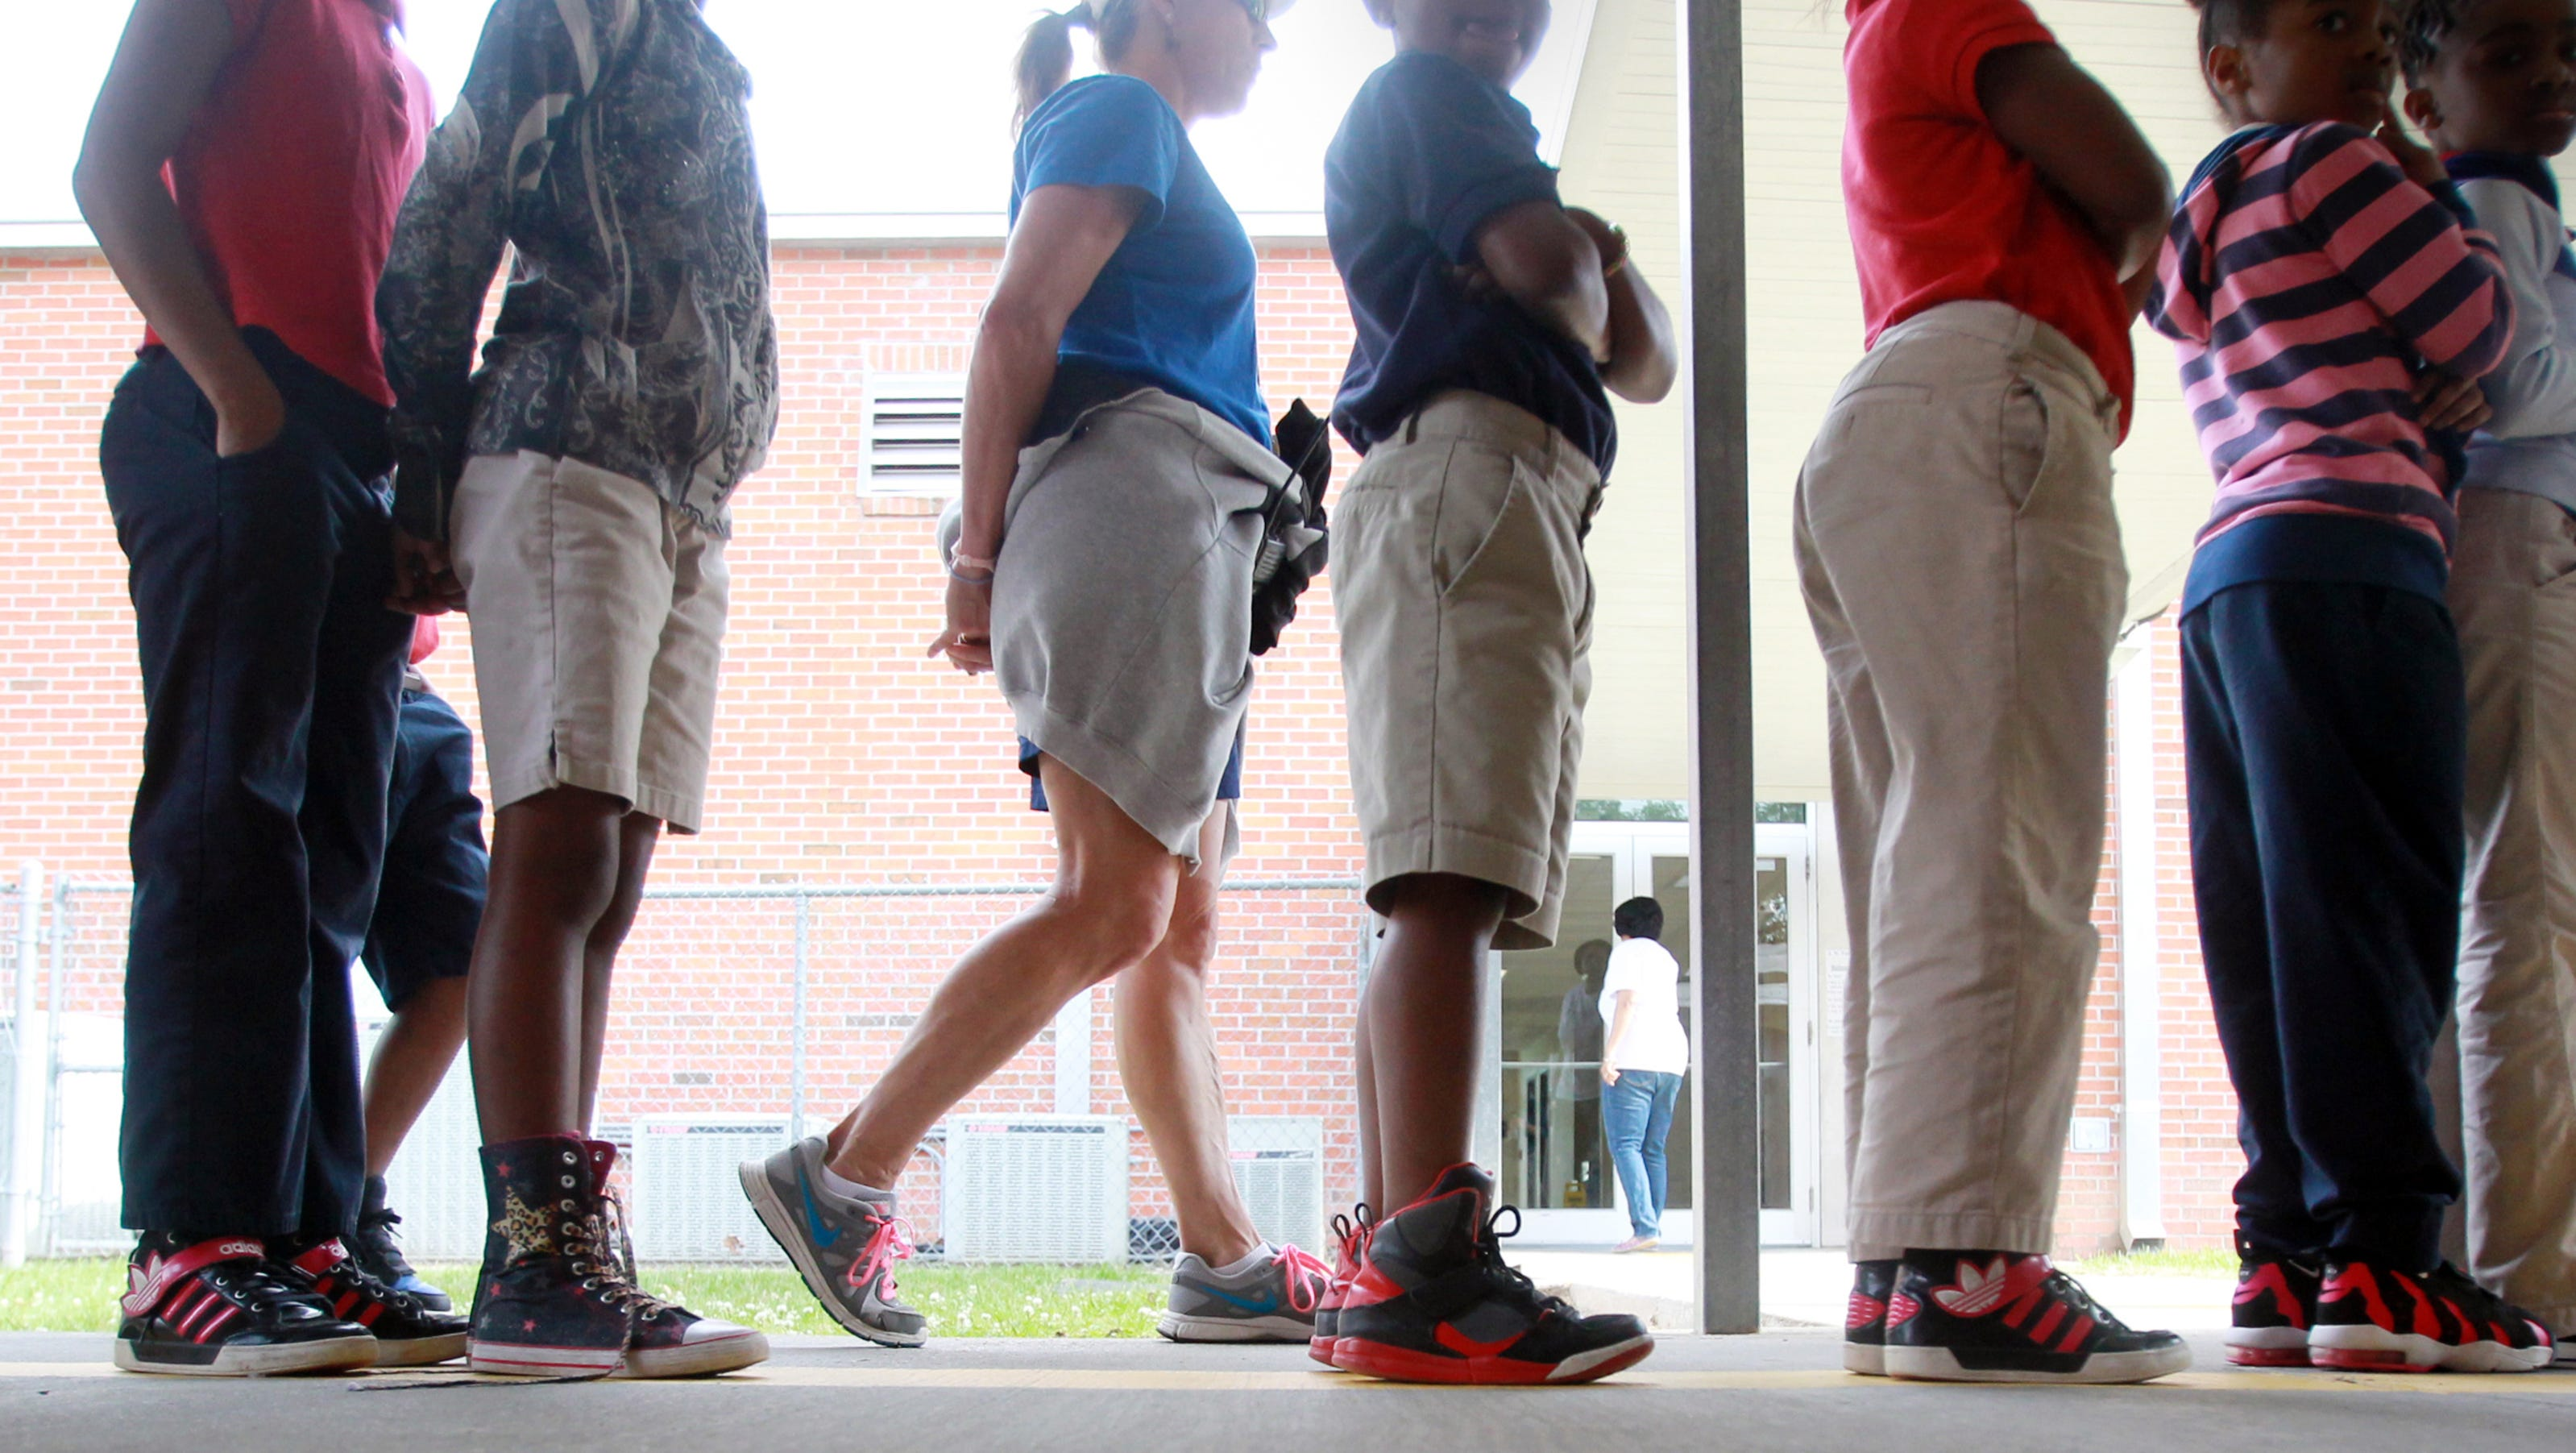 Louisiana ranked 47th worst in caring for children